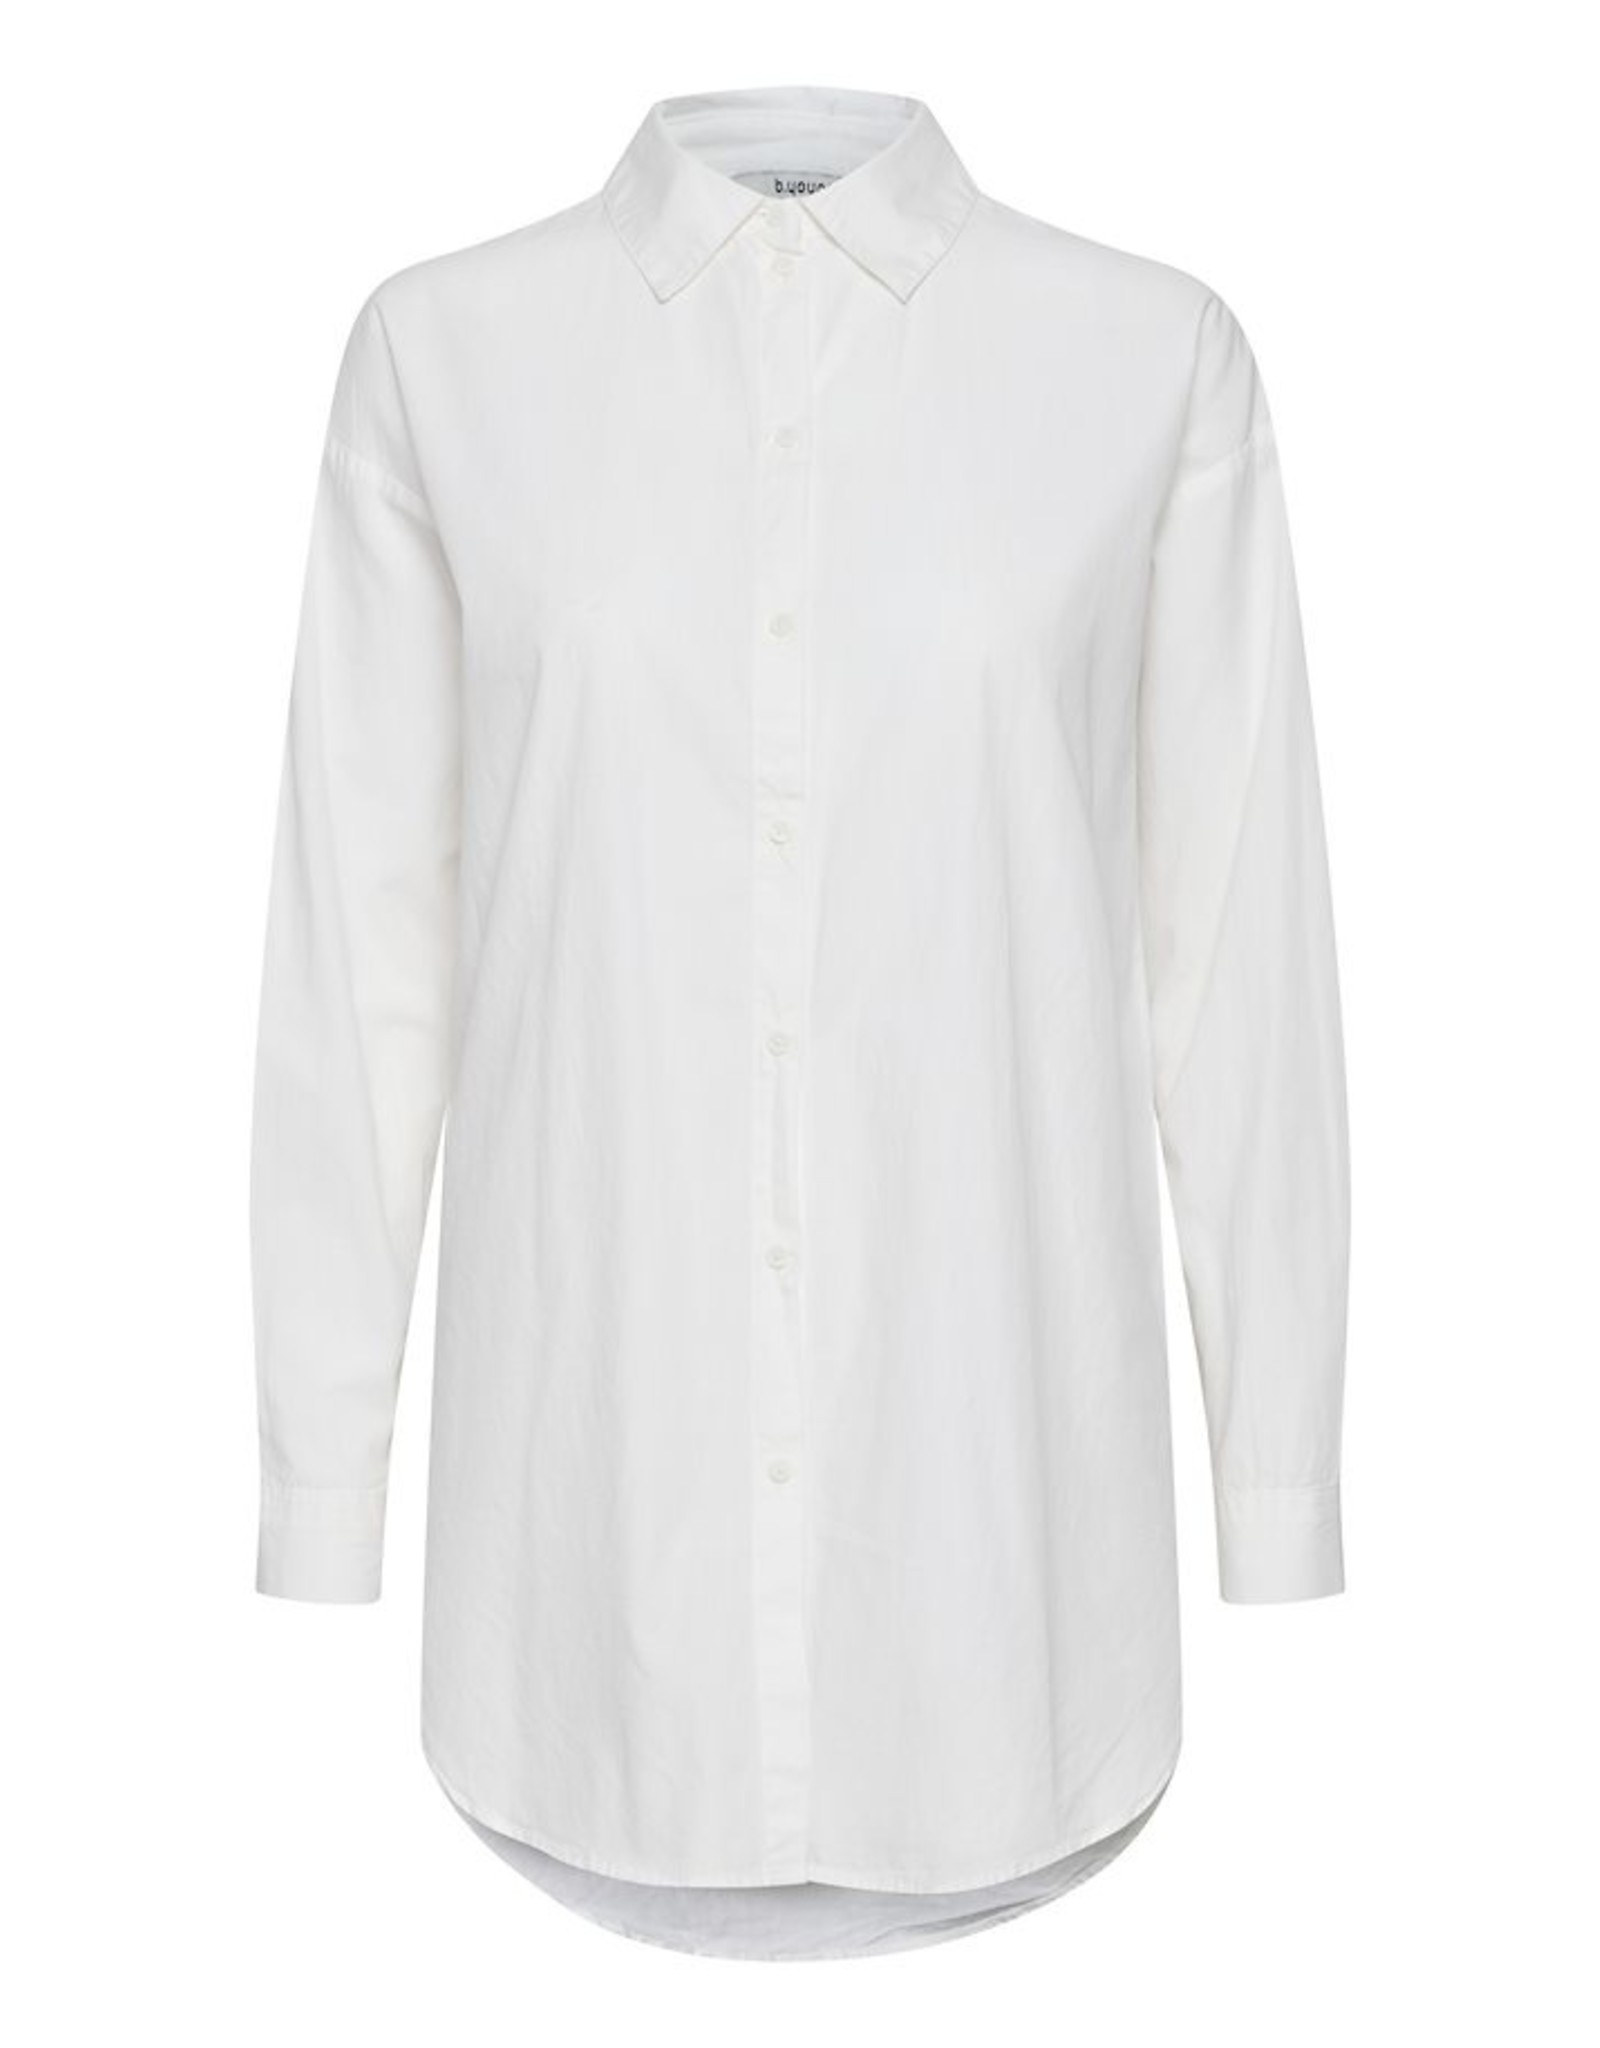 B.YOUNG 20809476 BUTTON UP